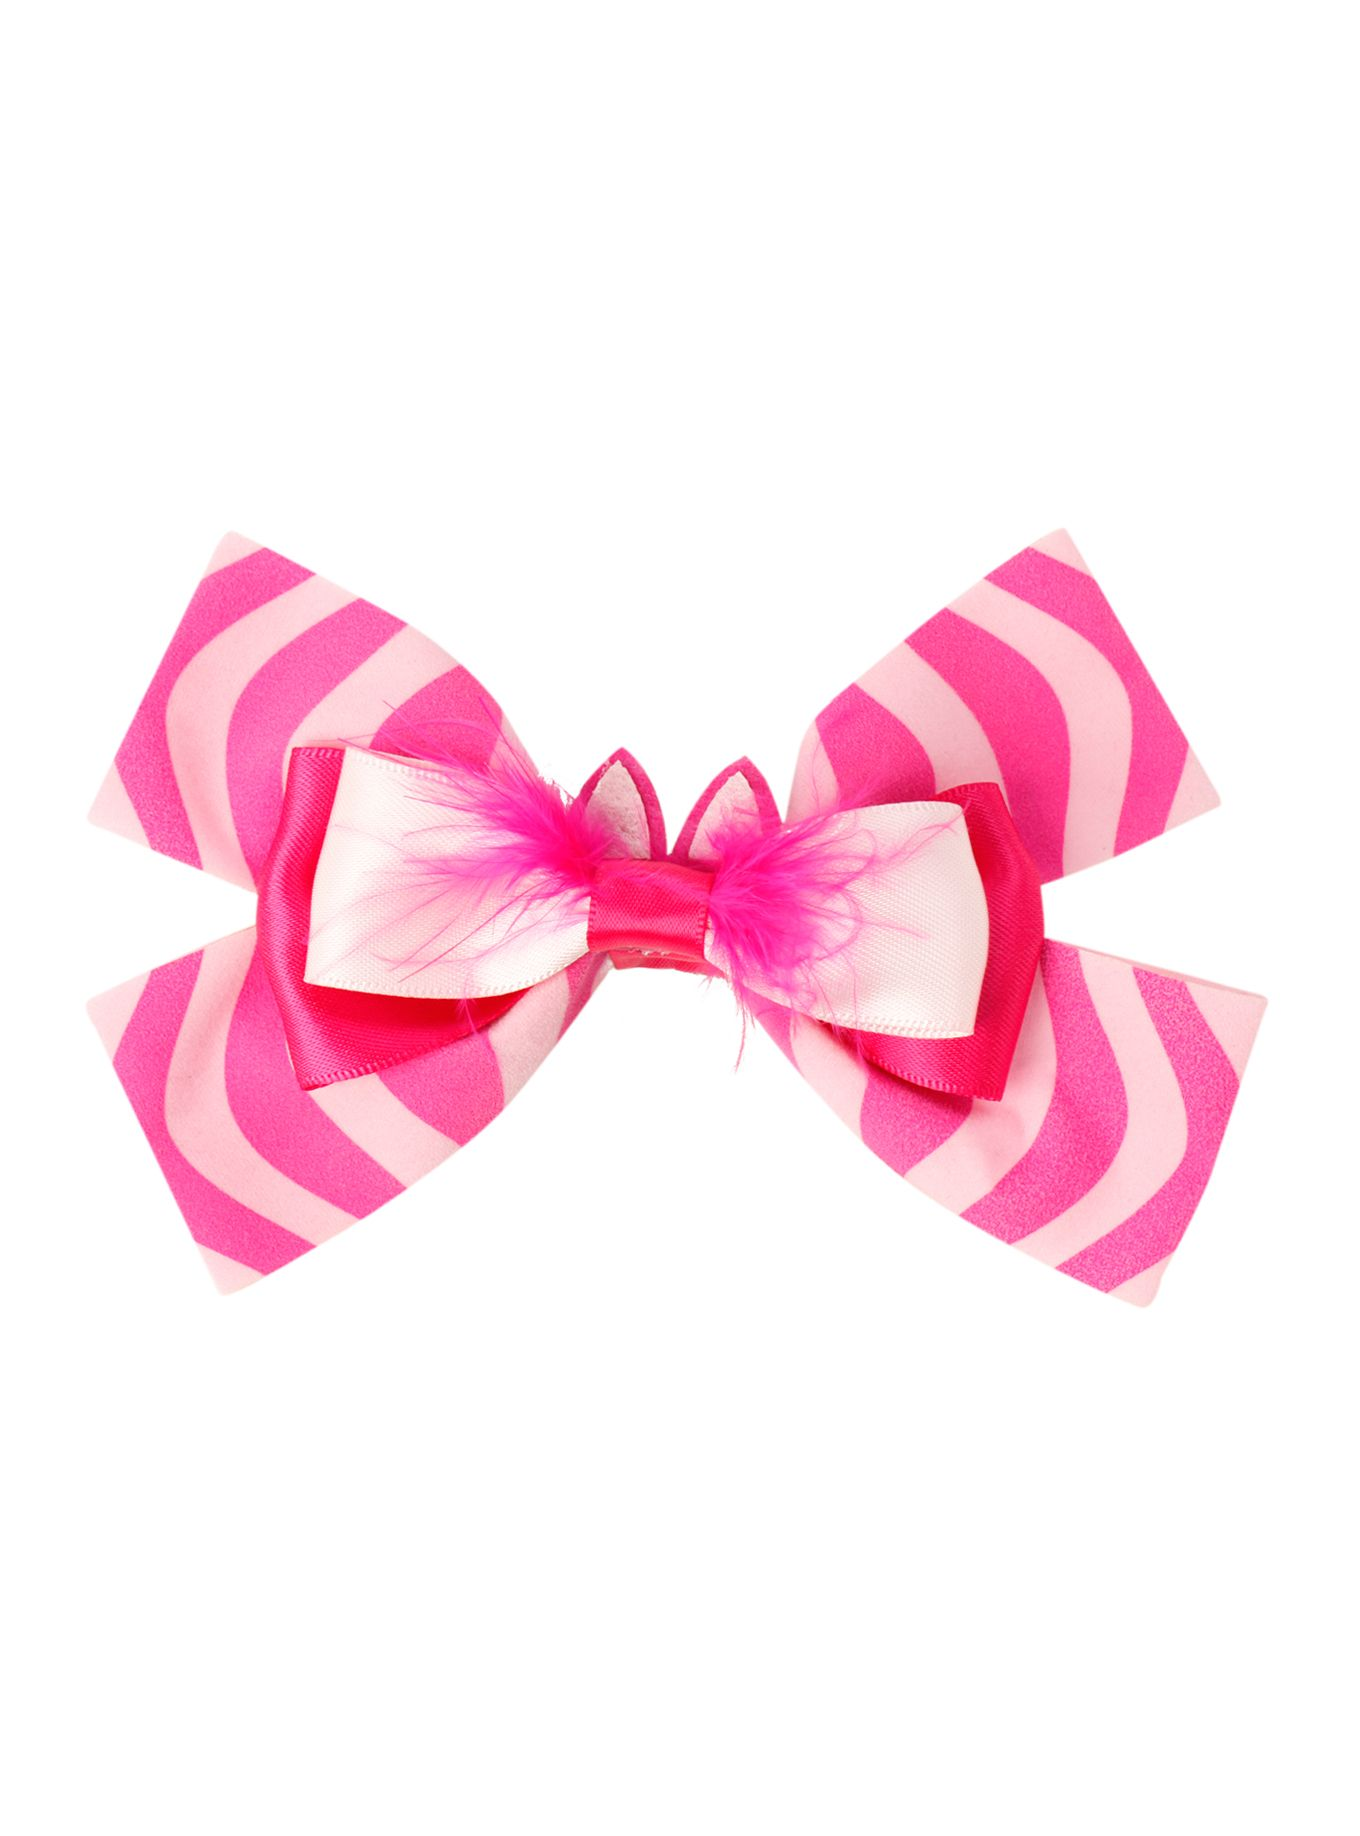 Mad For This Cheshire Cat Bow